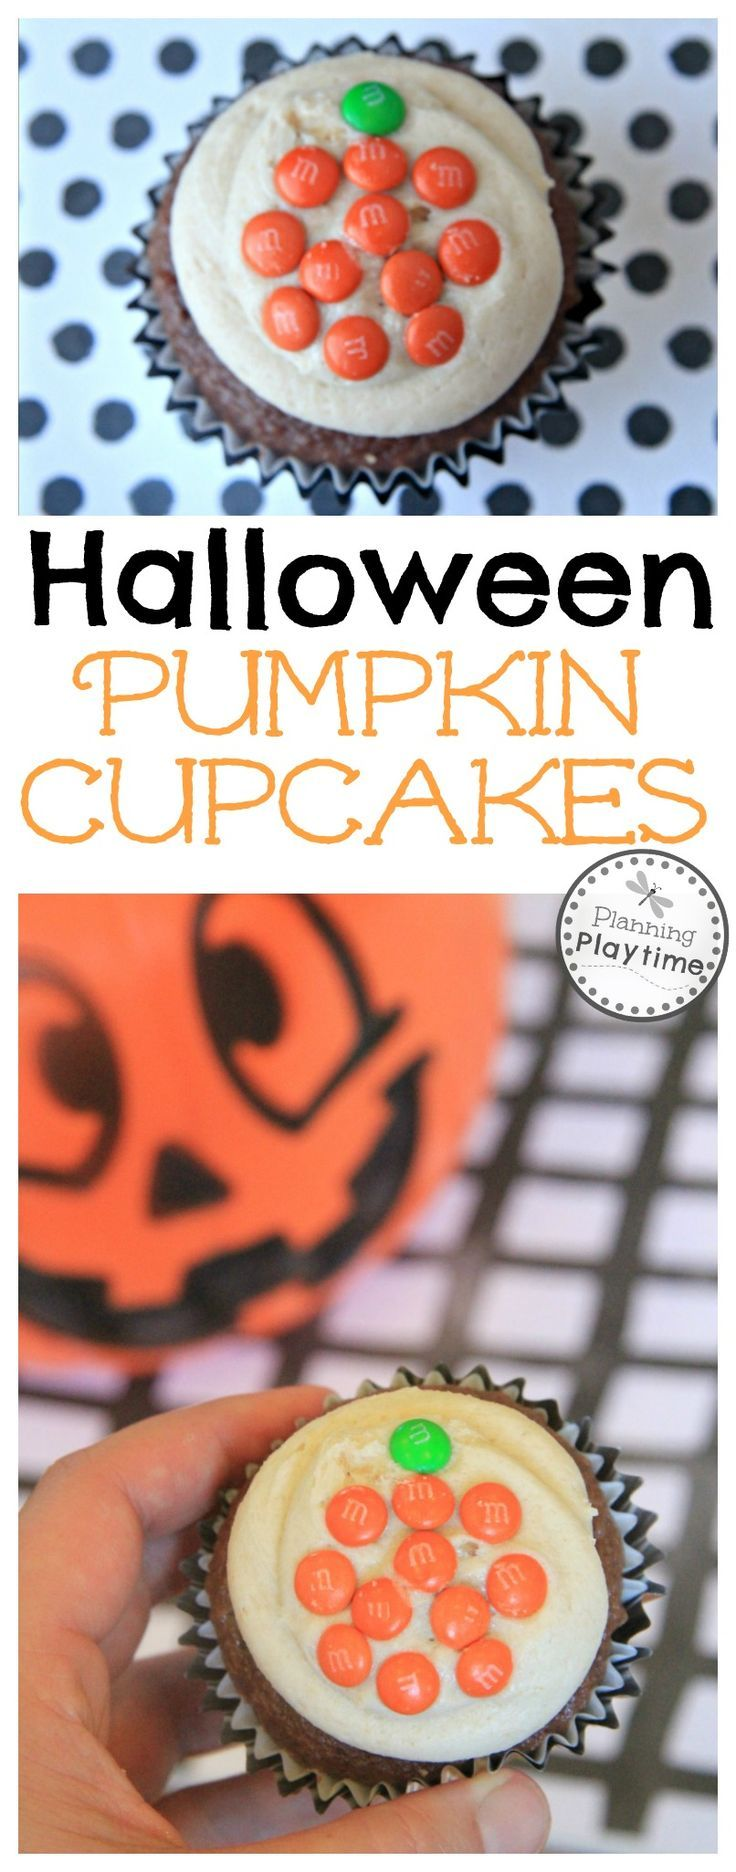 easy halloween pumpkin cupcakes decorated with mms - Mms Halloween